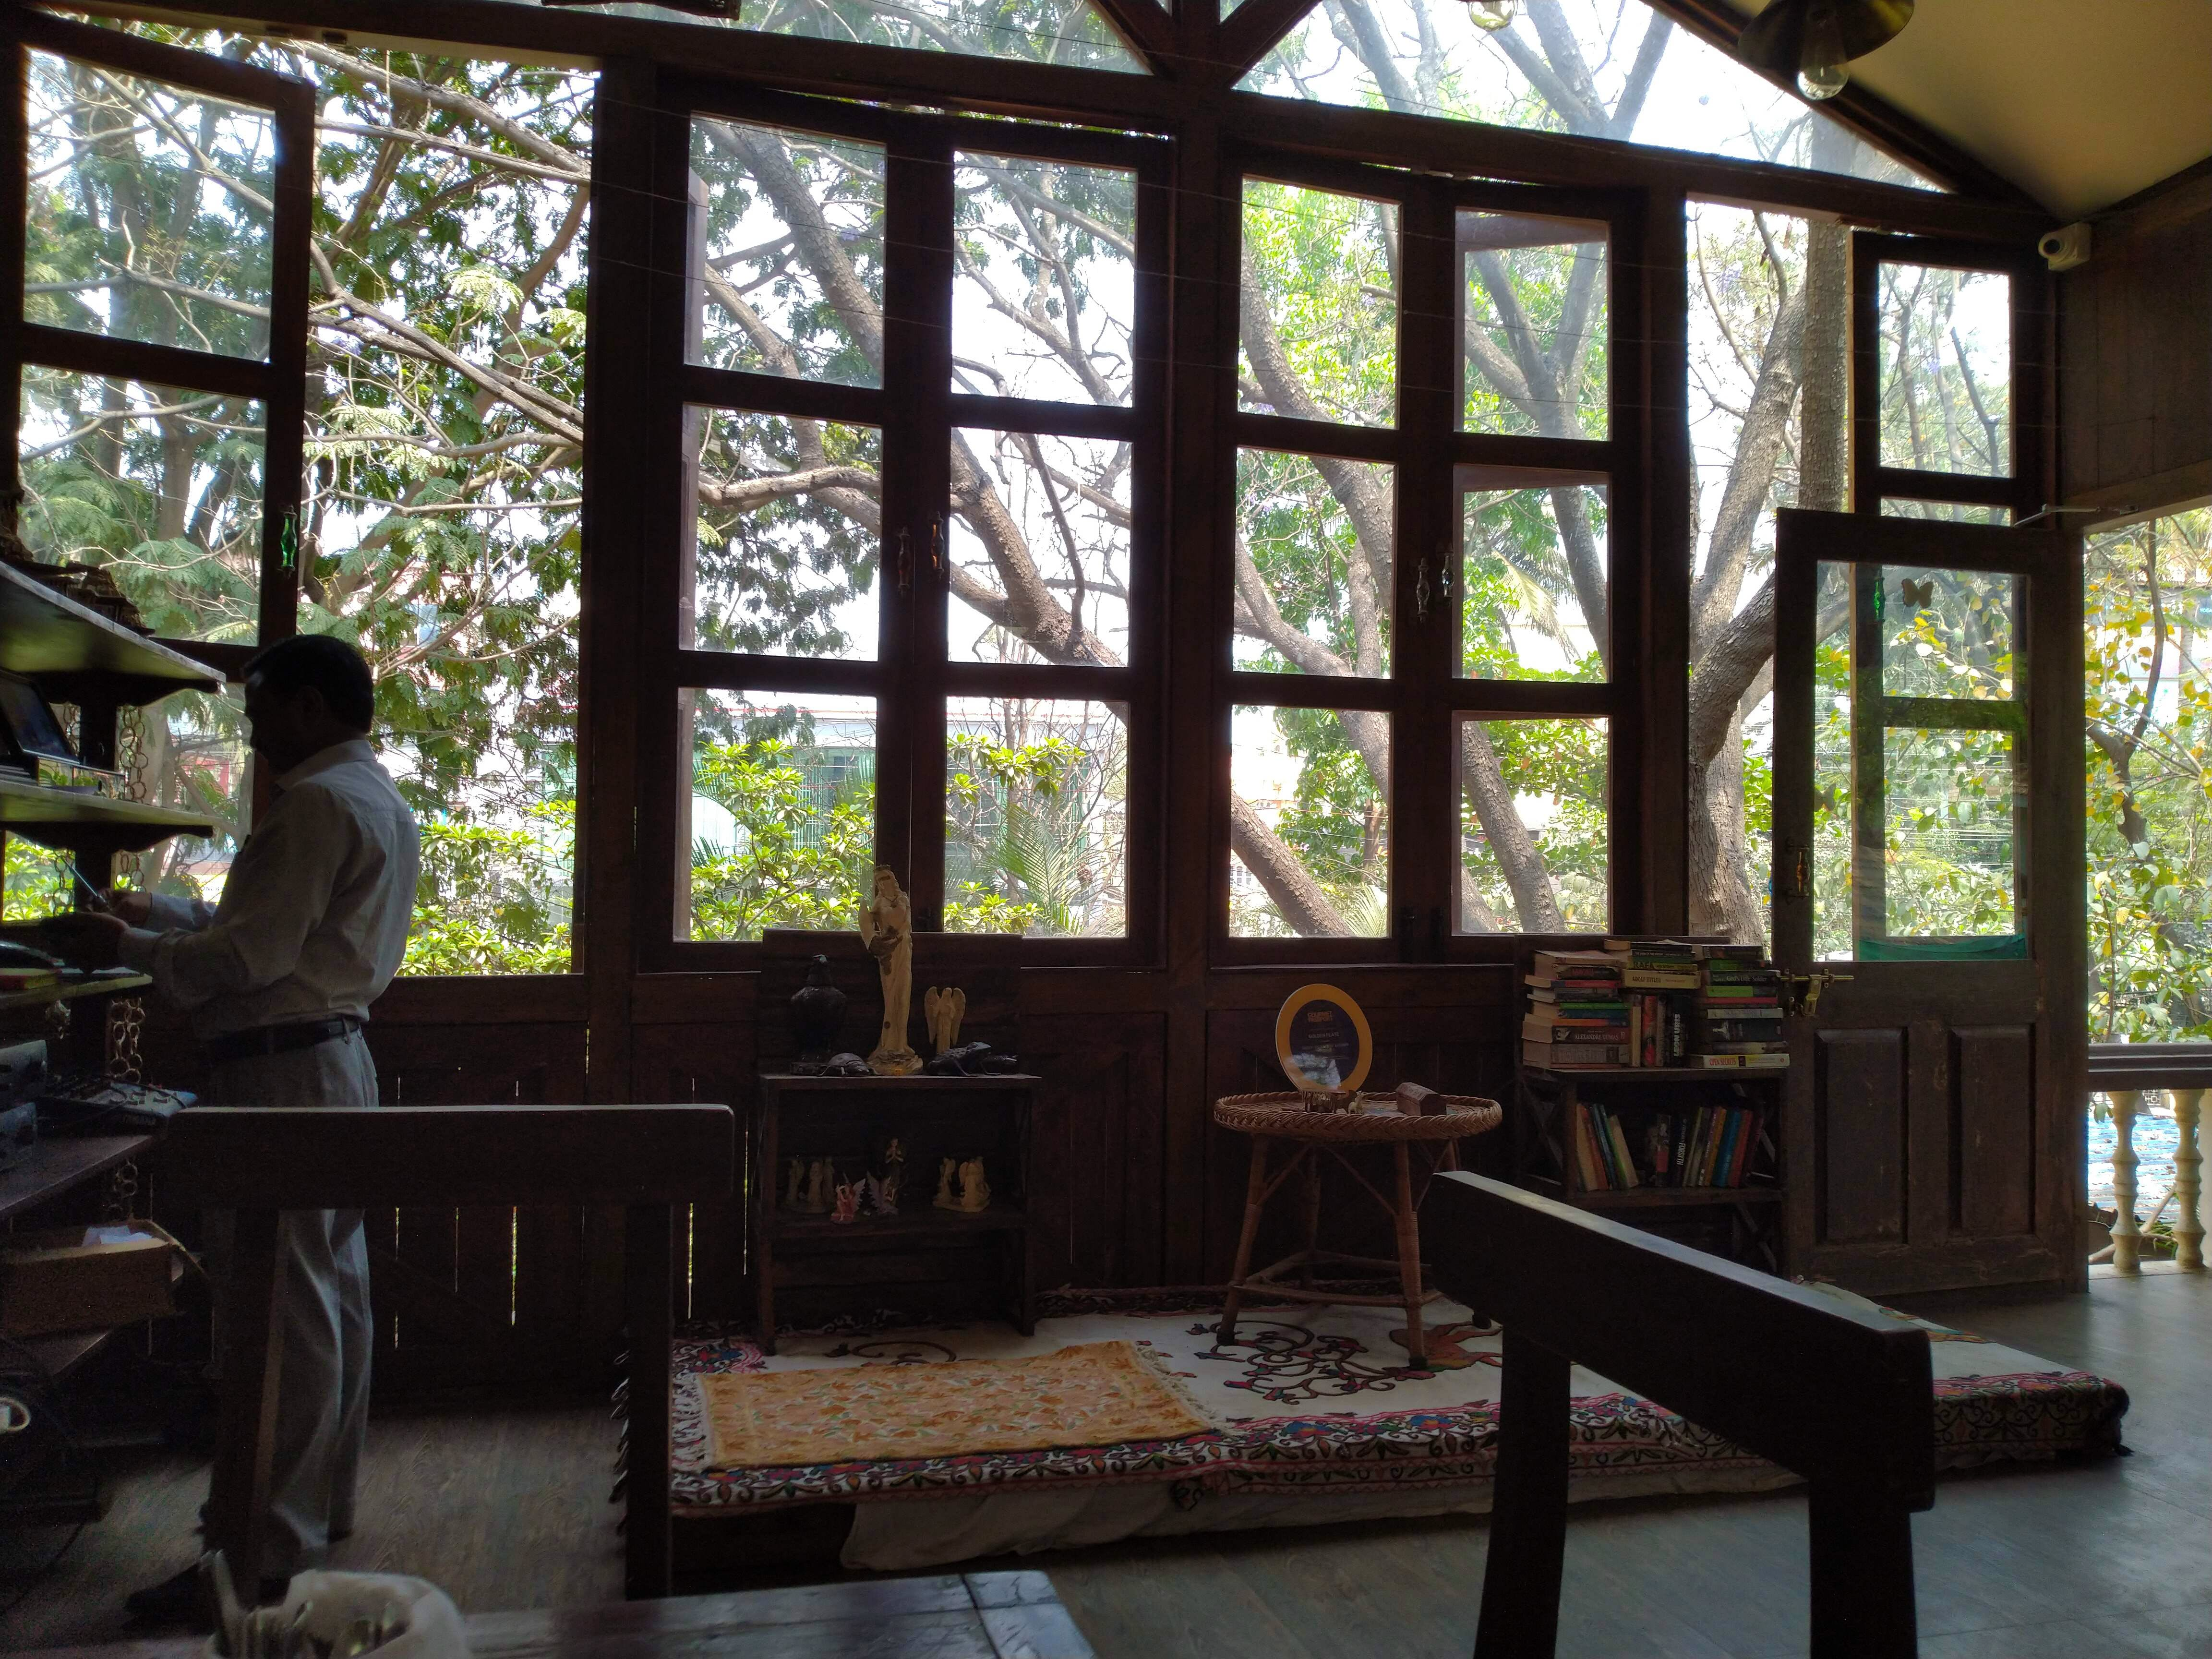 Window,Room,Building,Daylighting,Architecture,Tree,Interior design,Glass,House,Wood